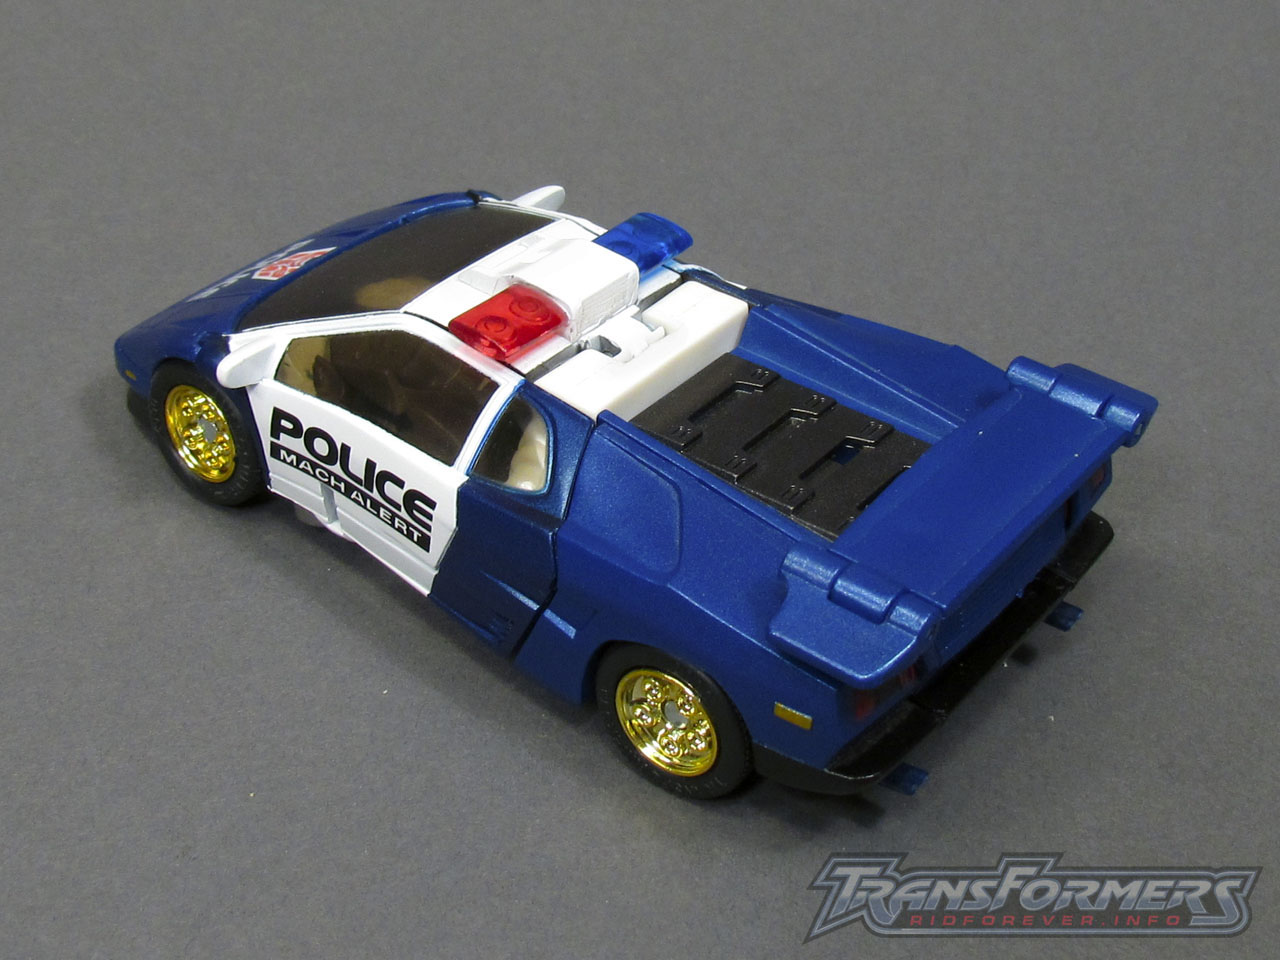 RID Prowl Super 004